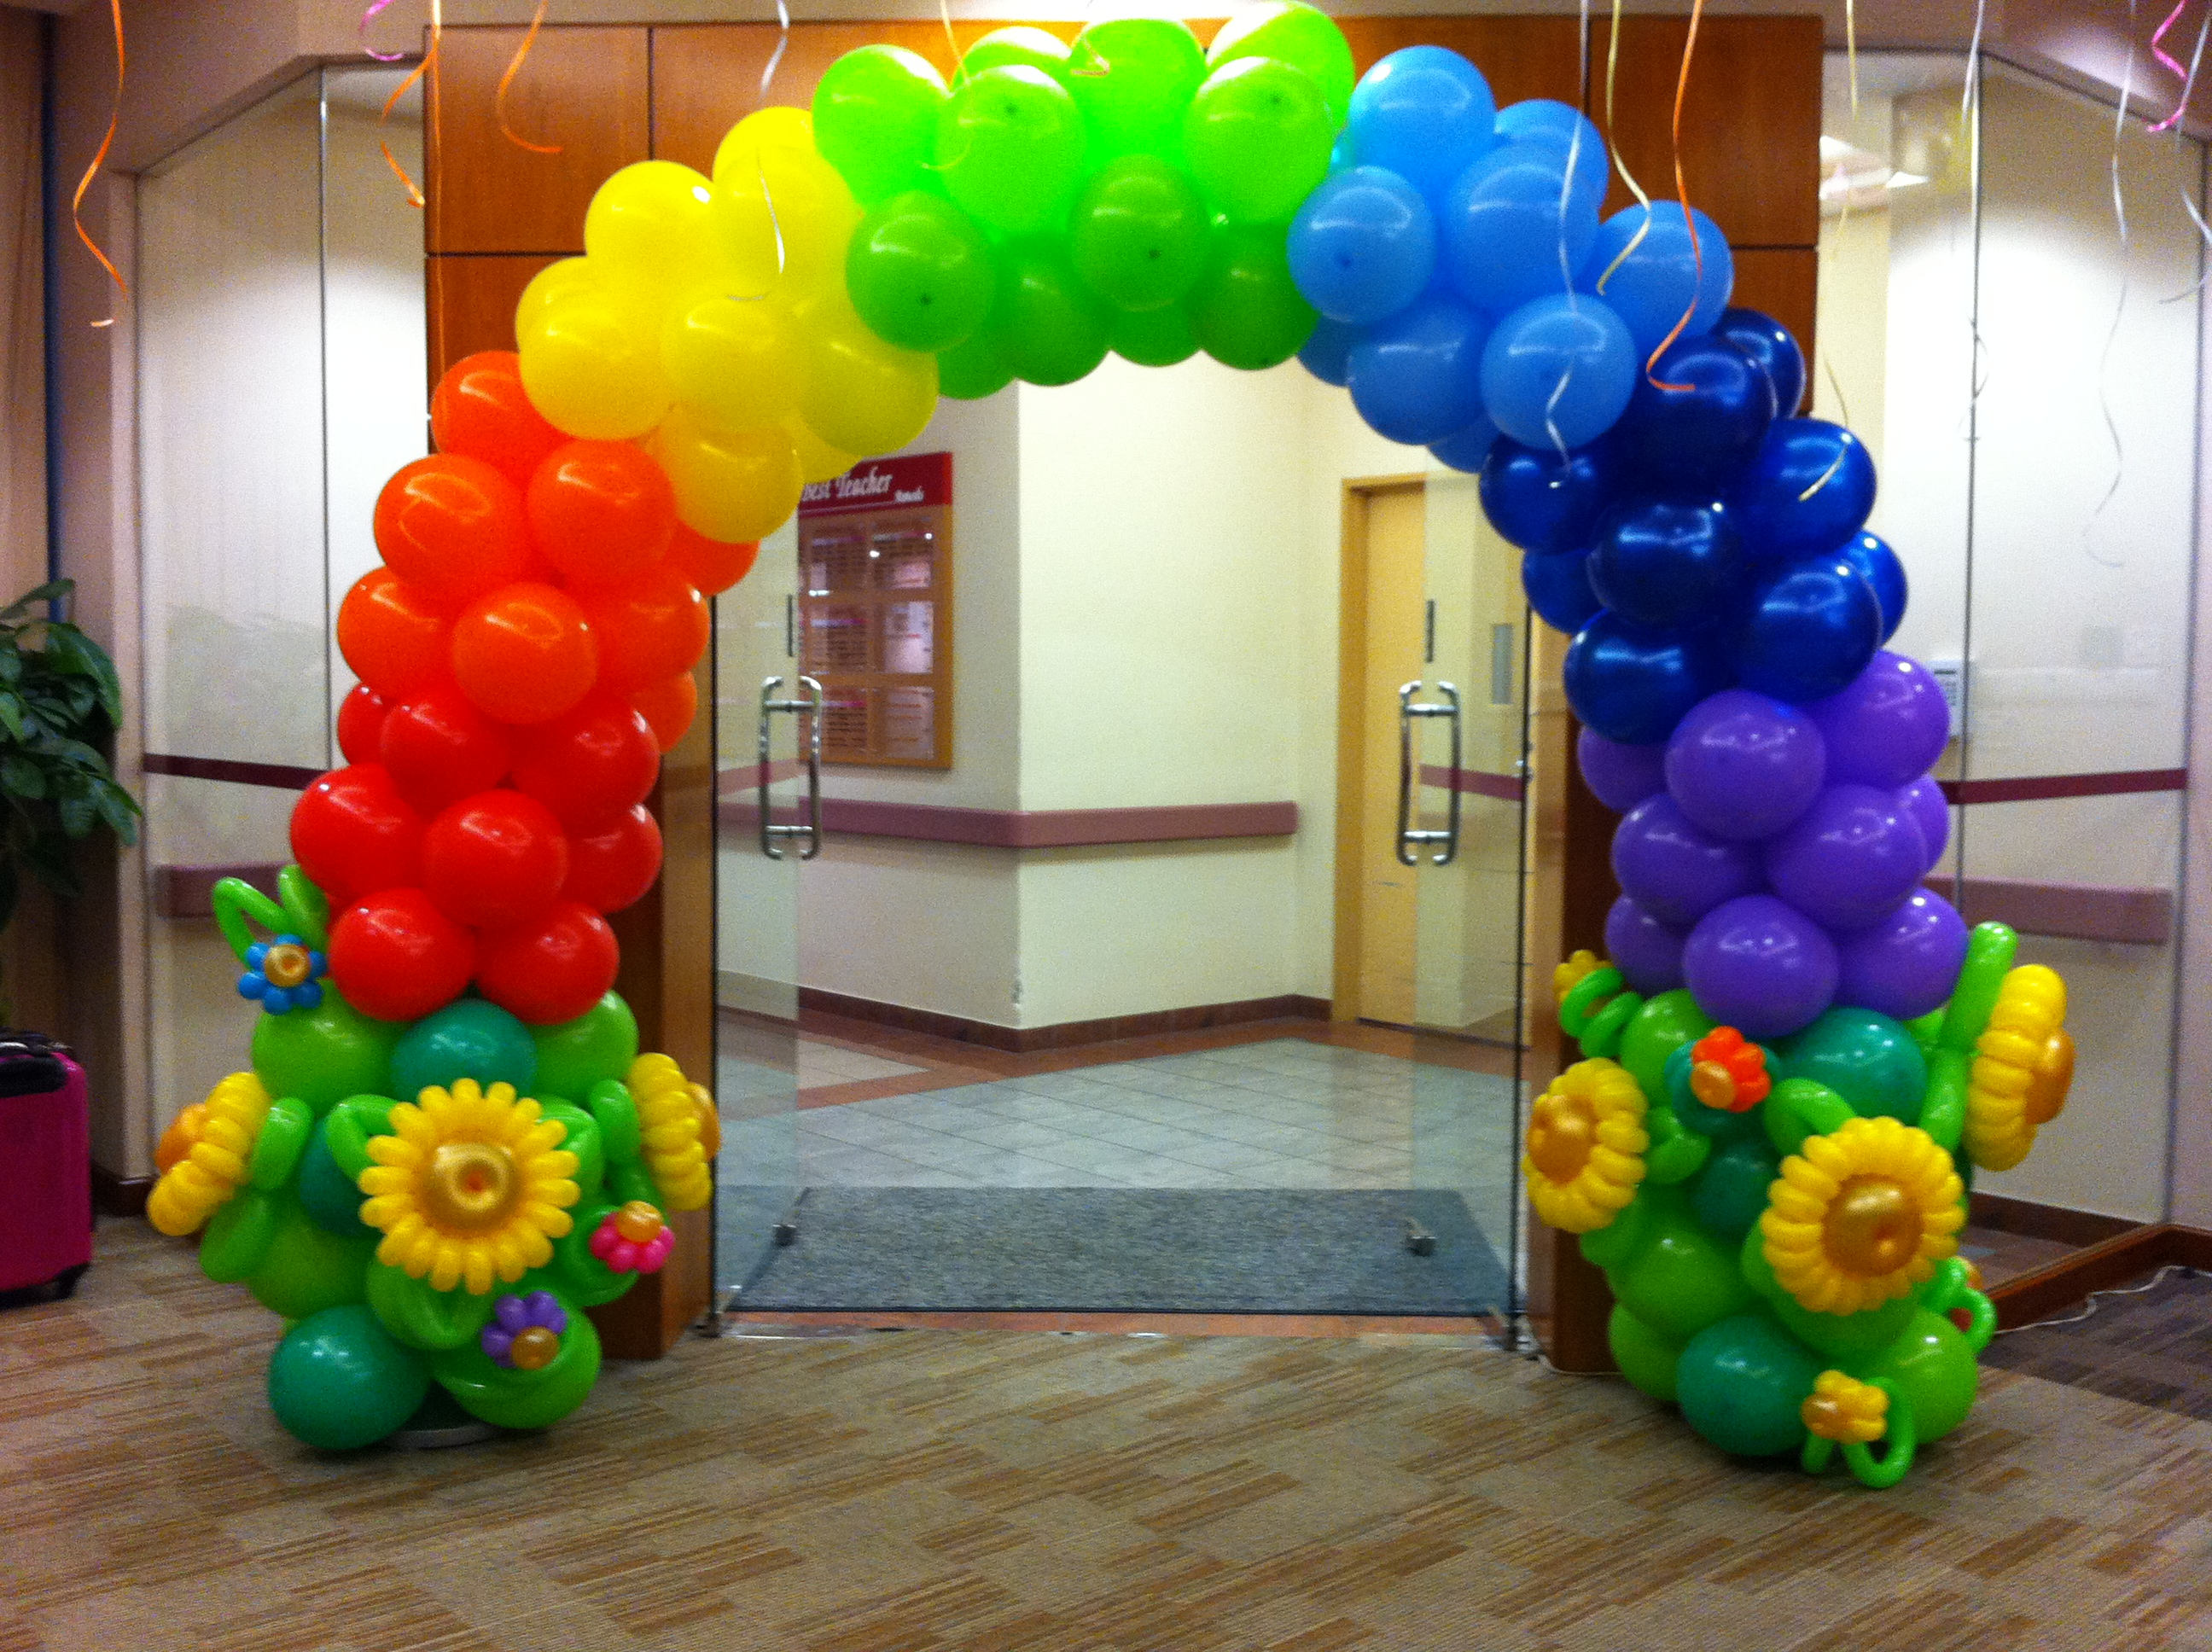 Singapore balloon rainbow arch that balloons for Arch balloon decoration